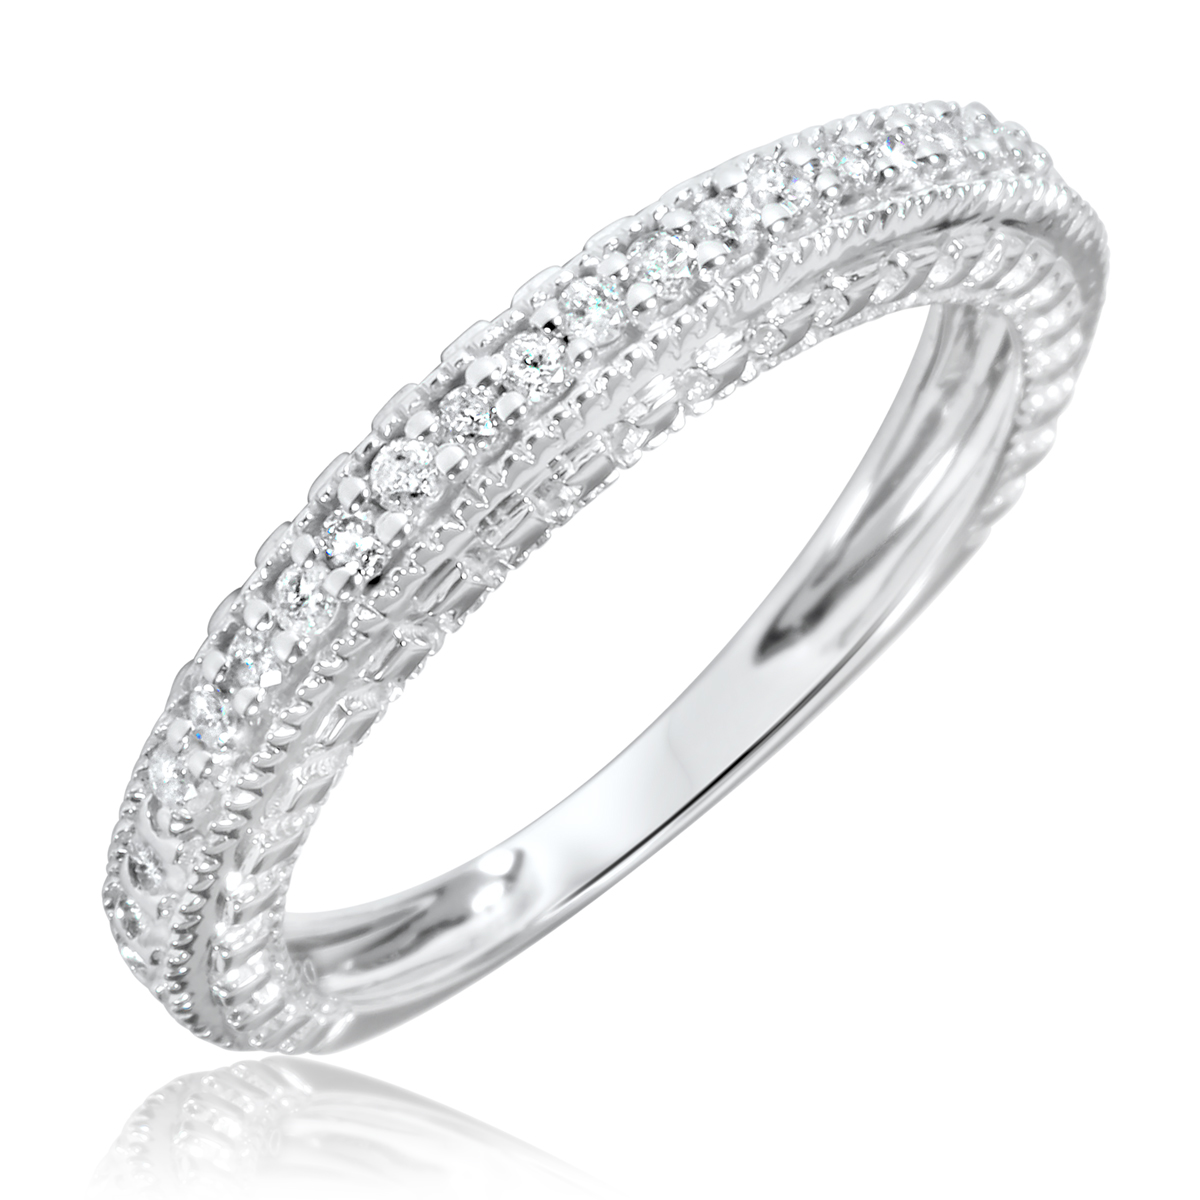 3 4 carat bridal wedding ring set 14k white gold